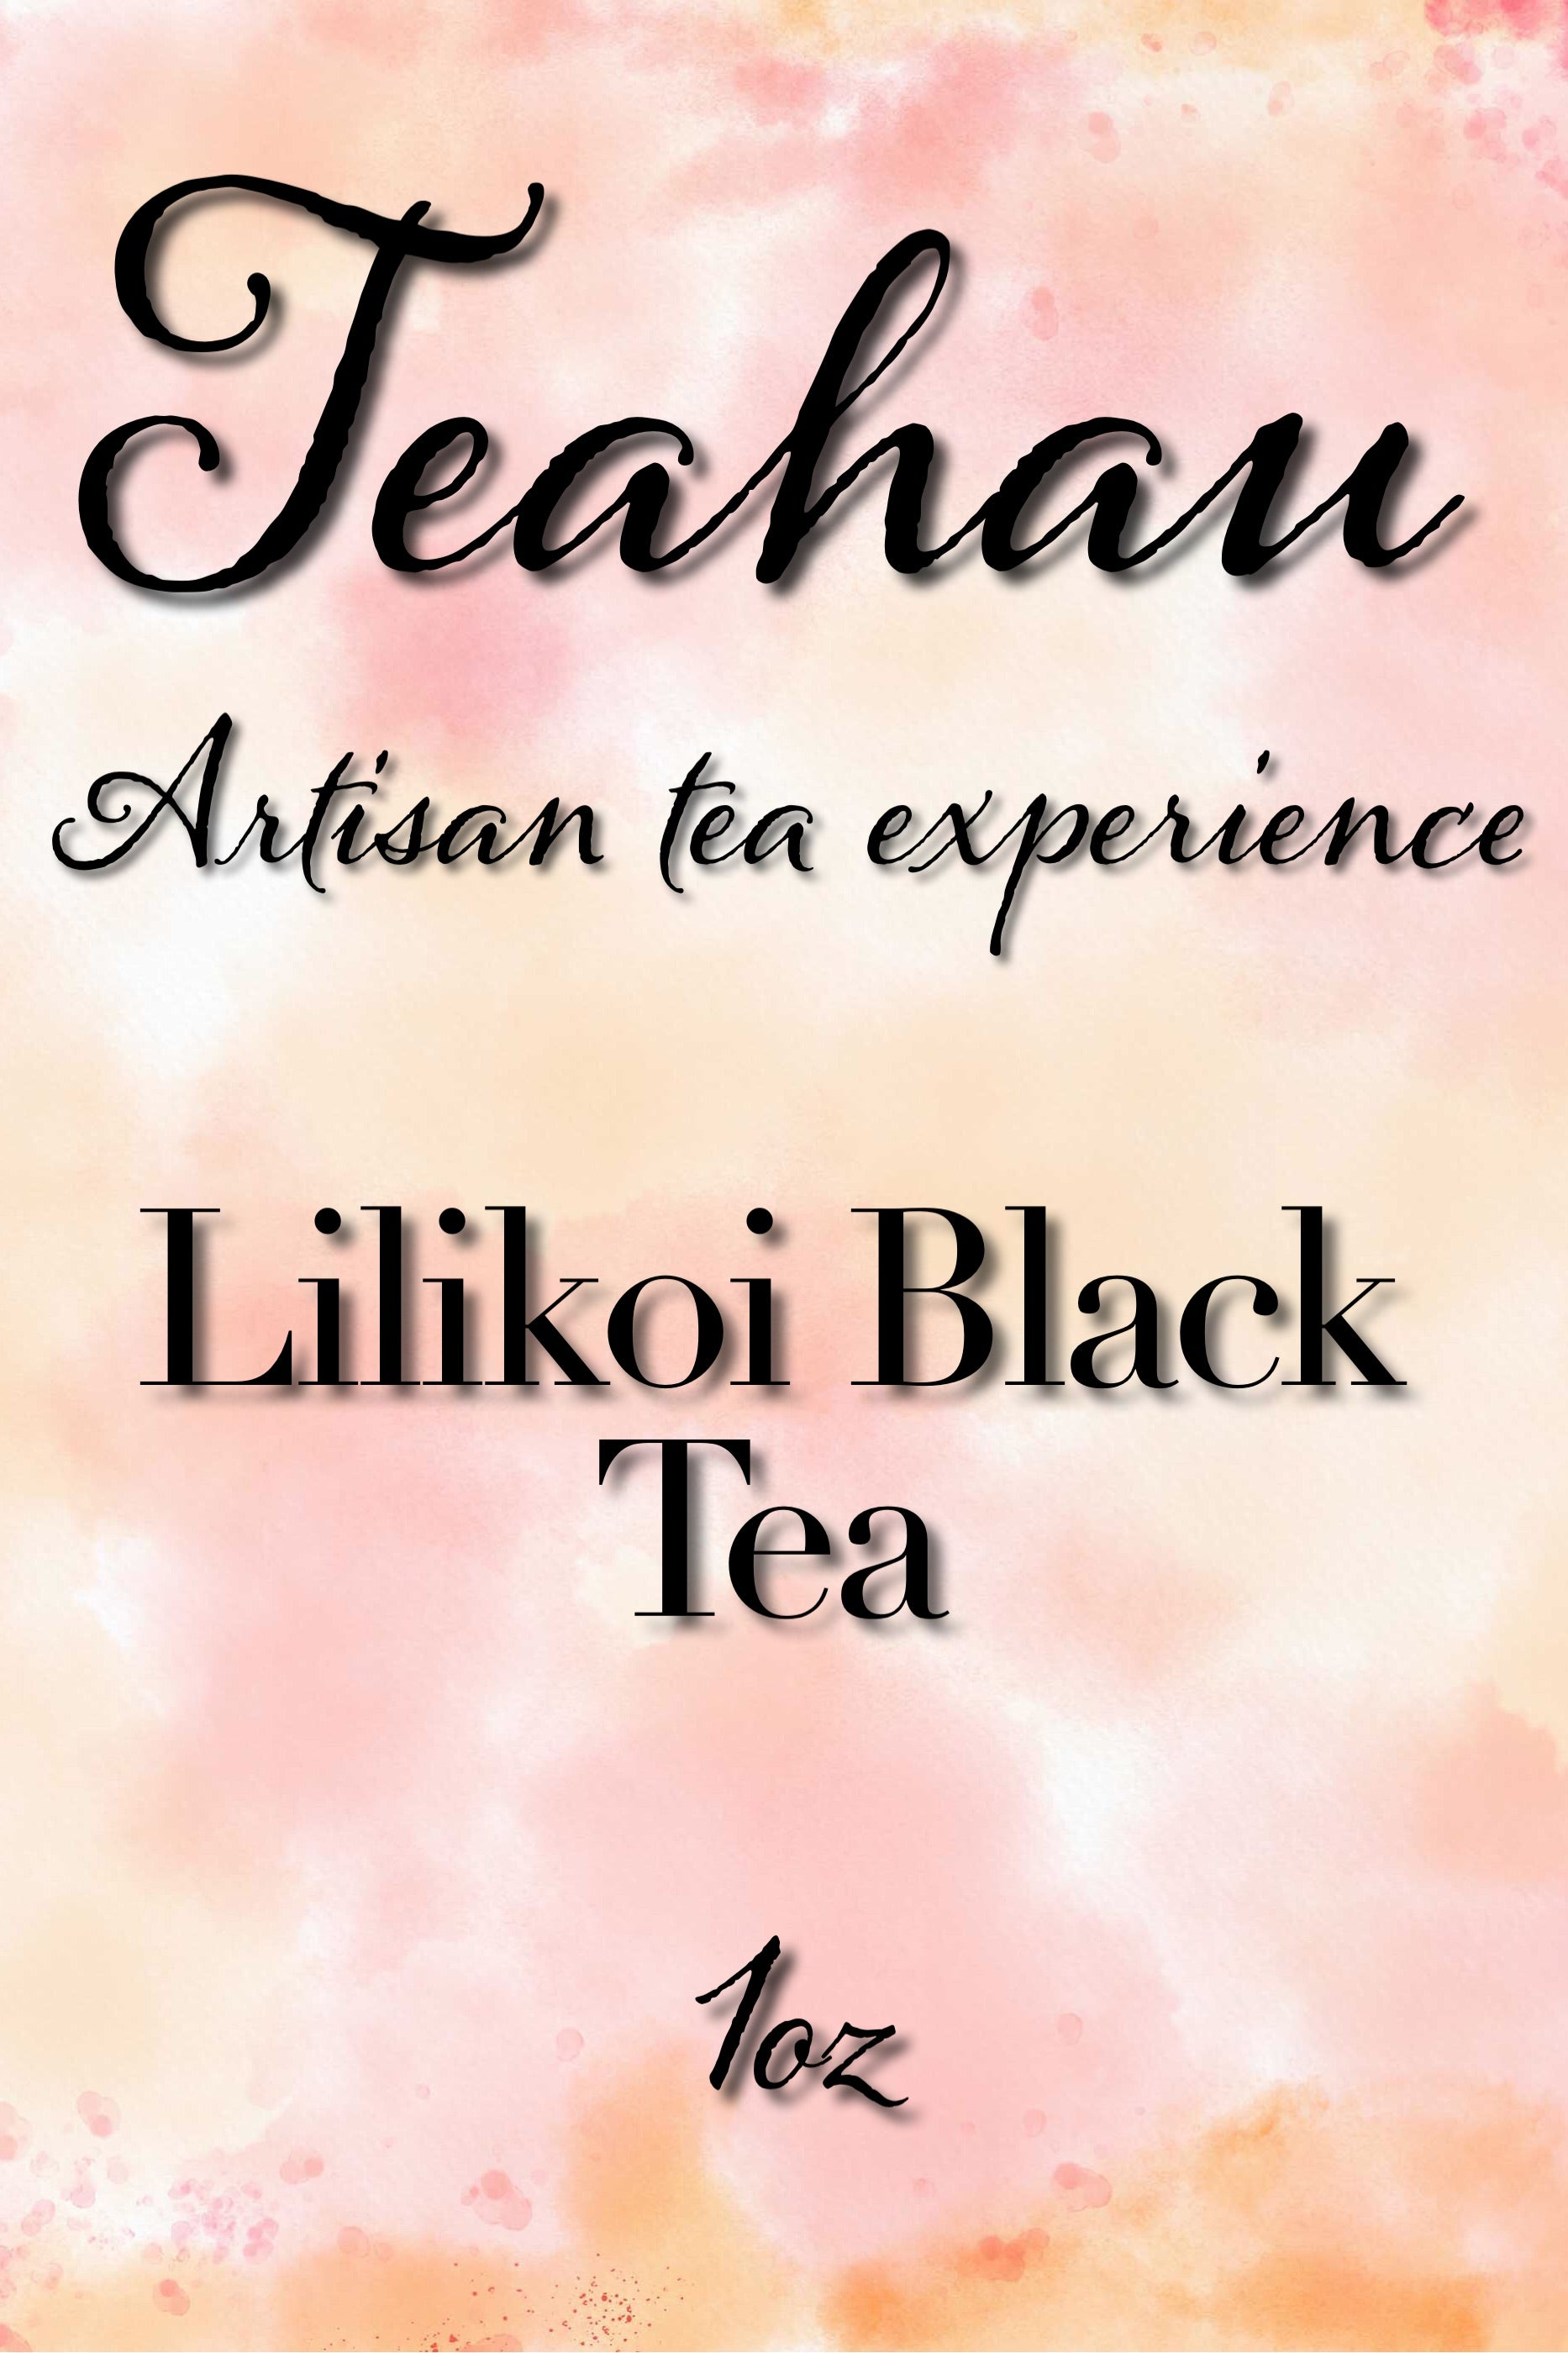 Lilikoi Black Tea 1 oz